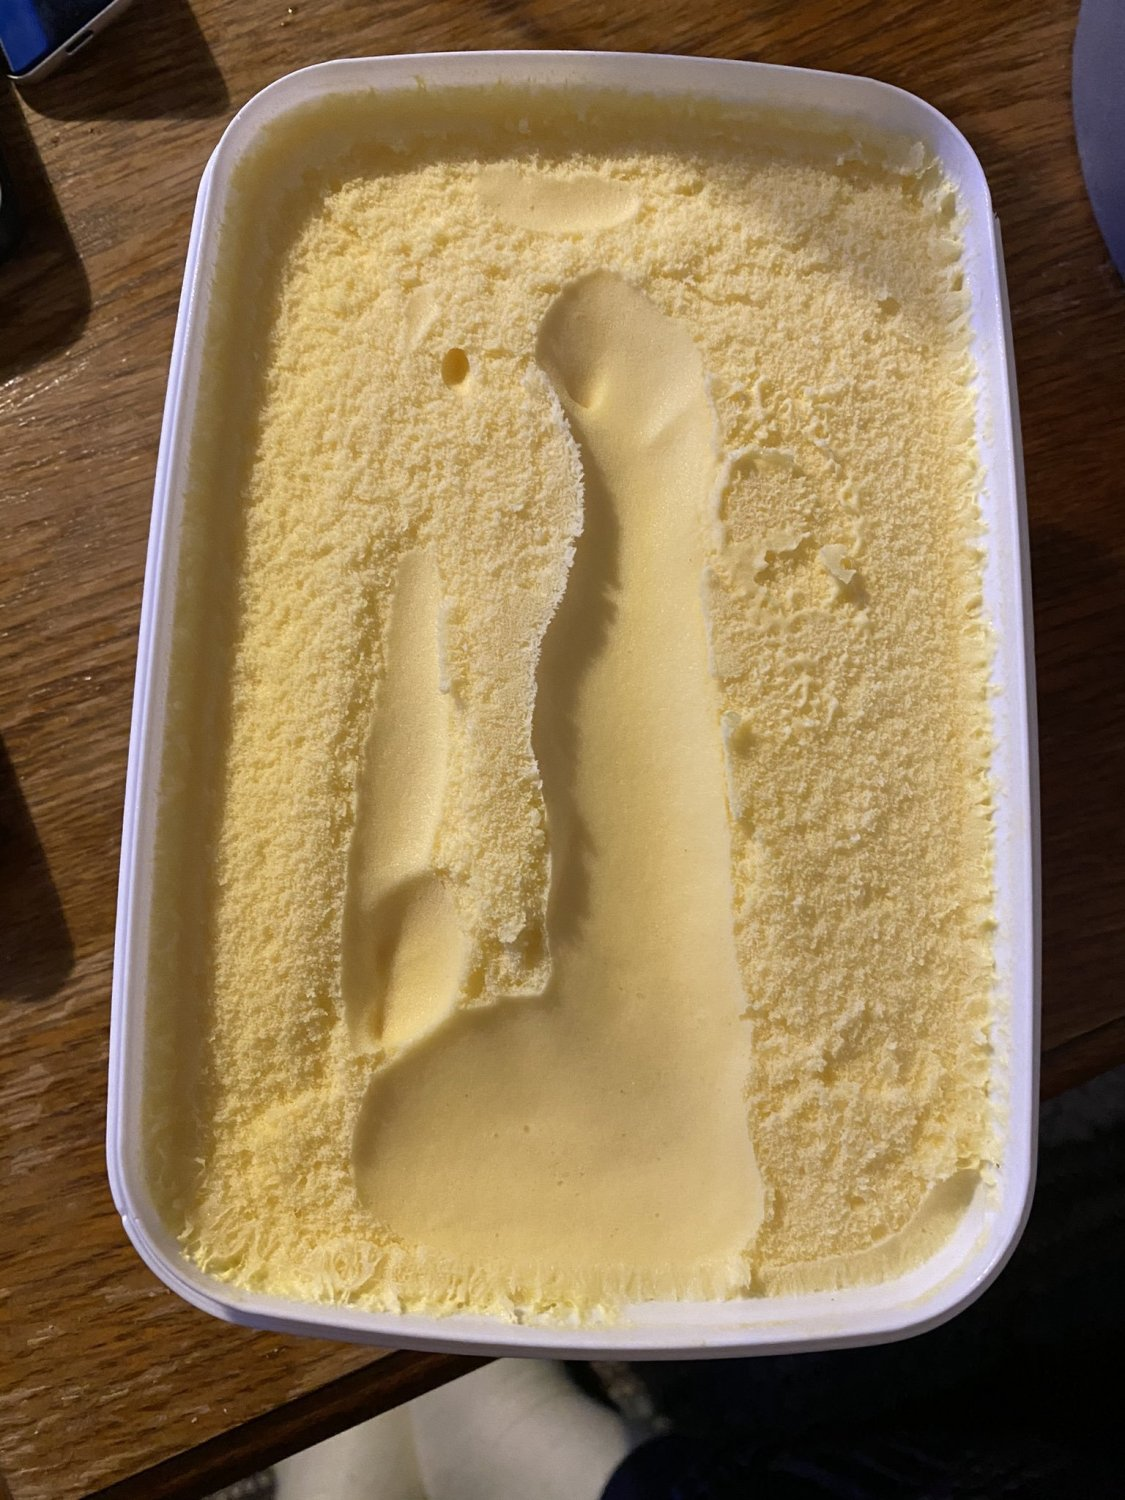 man asks tesco if they had a 'fun time' with his ice cream after x-rated imprint